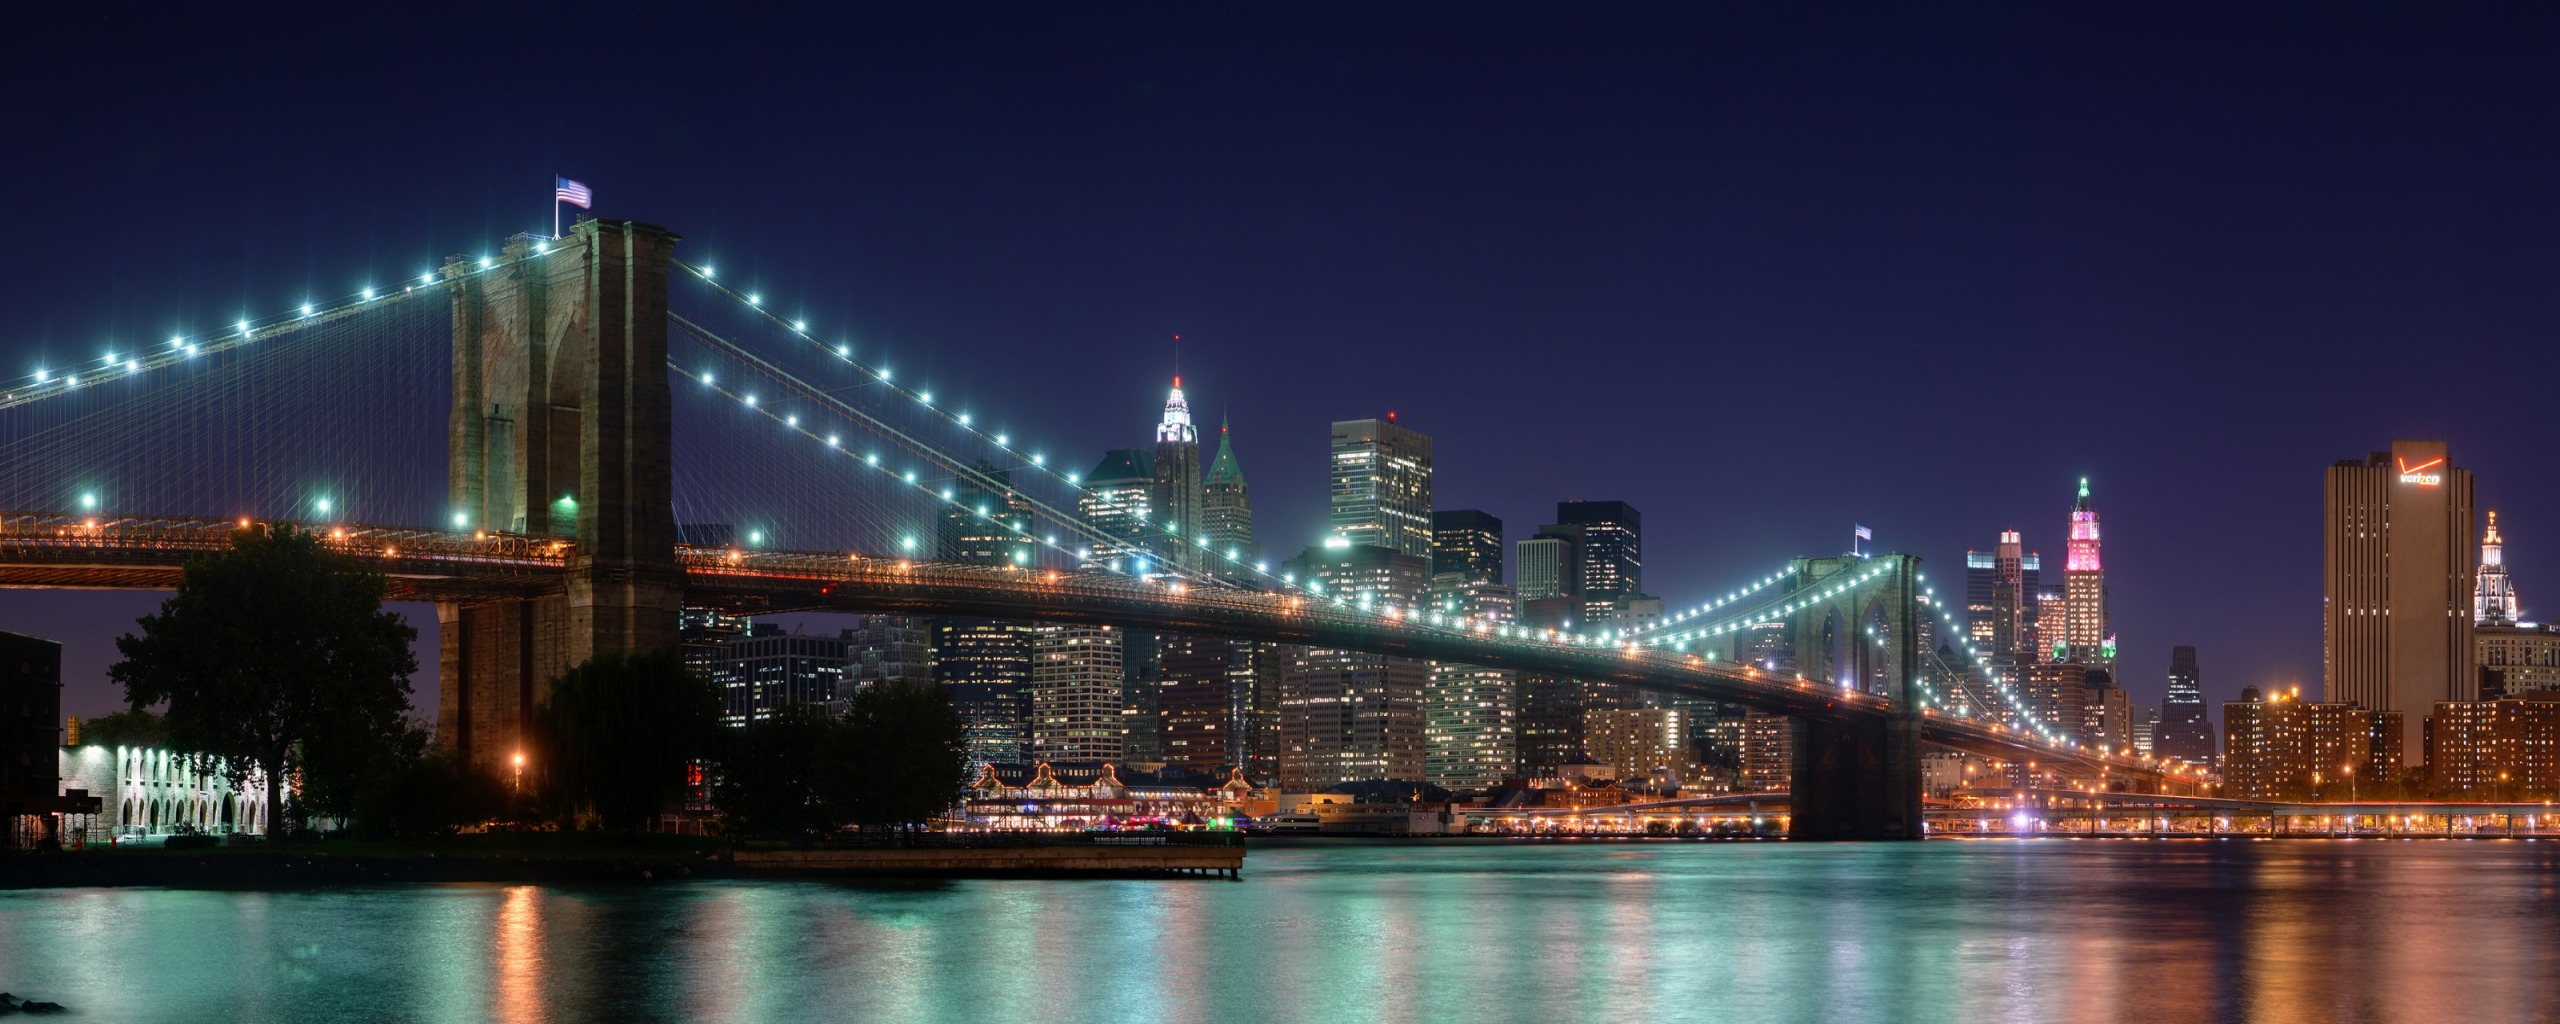 Brooklyn Bridge Night - Brooklyn Bridge Night